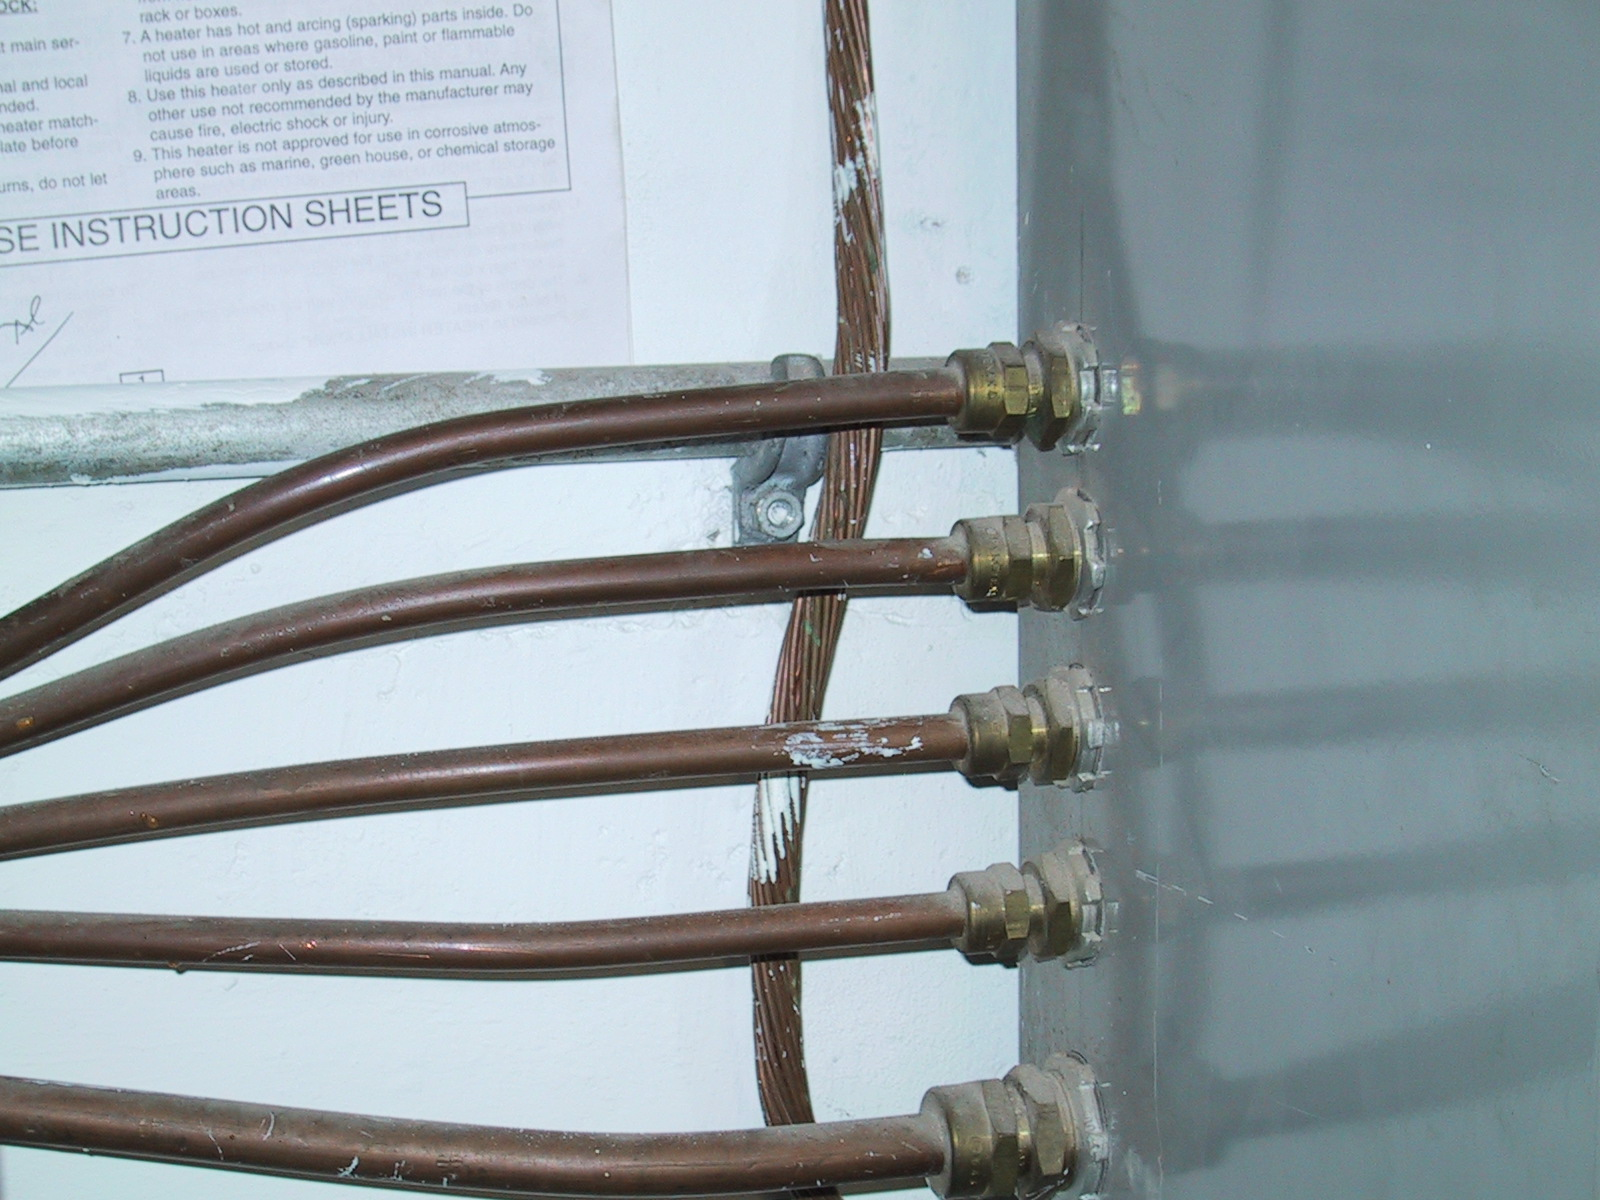 Mineral Insulated Copper Clad Cable Wikipedia Code Check Electrical Hundreds Of Nec Facts At Your Five Metal Covered Cables Enter The Left Side An Panel Through Brass Fittings